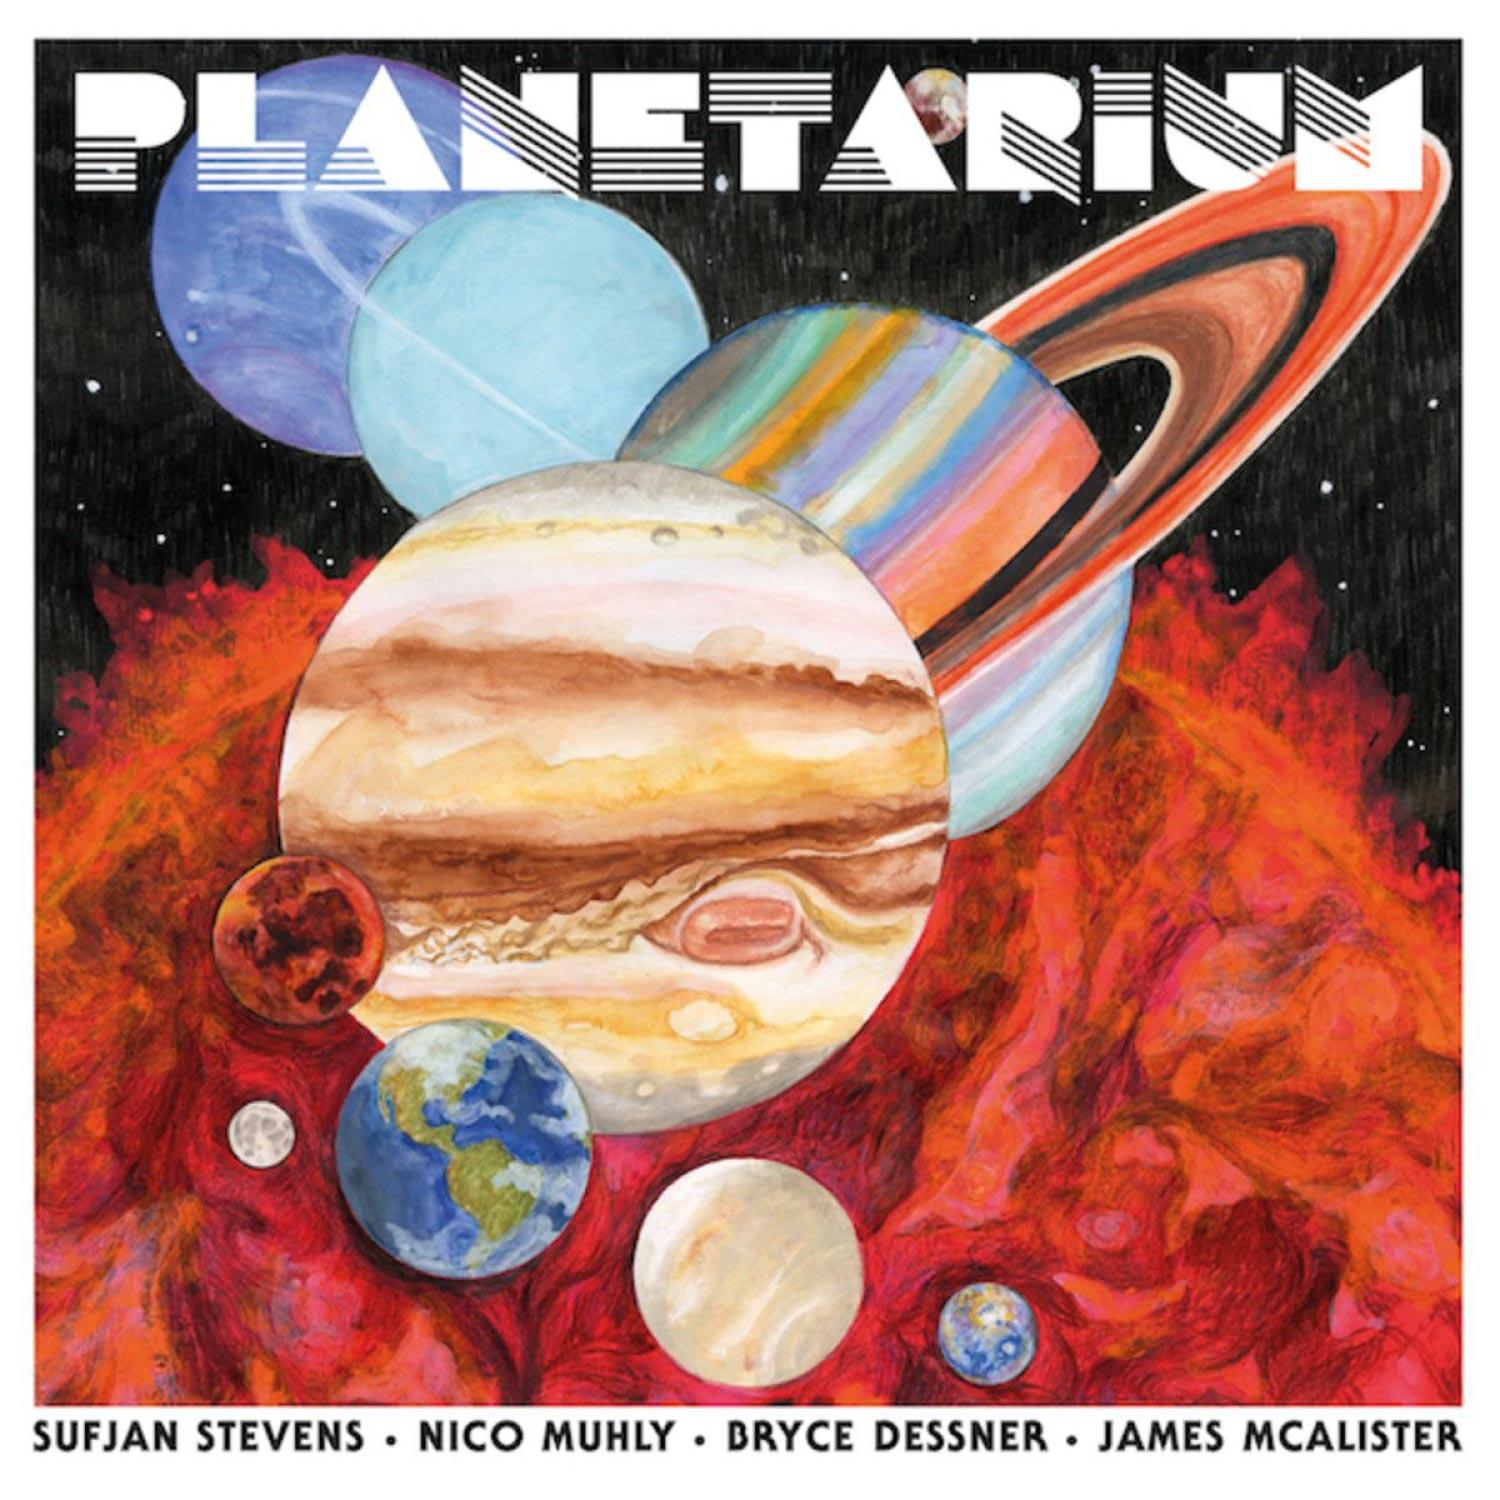 Planetarium by Sufjan Stevens, Nico Muhly, Bryce Dessner and James McAlister